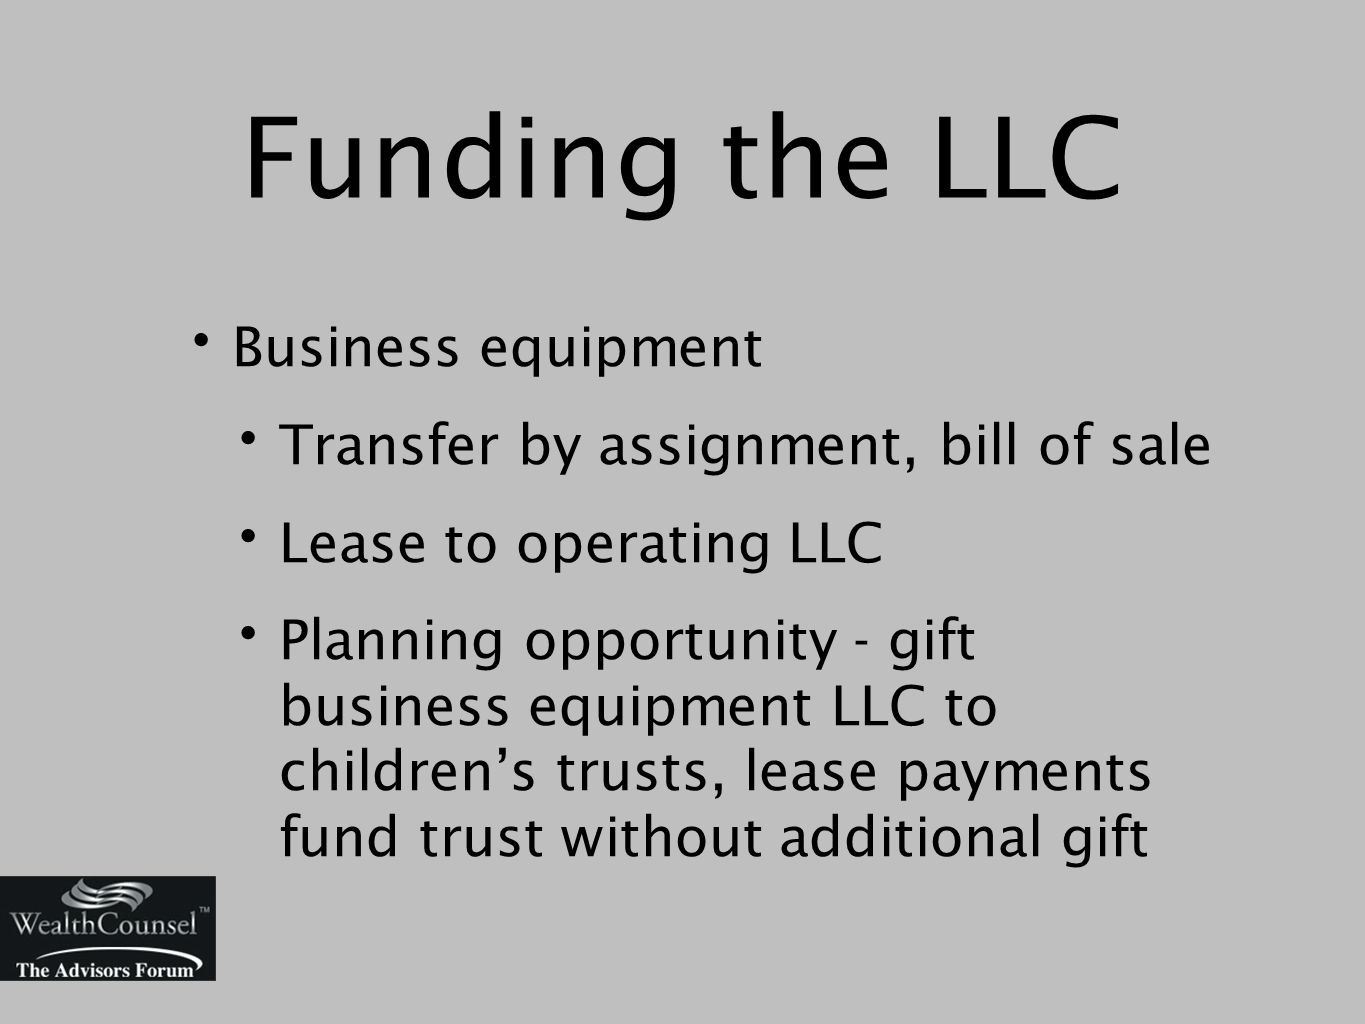 Funding the LLC Business equipment Transfer by assignment, bill of sale Lease to operating LLC Planning opportunity - gift business equipment LLC to children's trusts, lease payments fund trust without additional gift